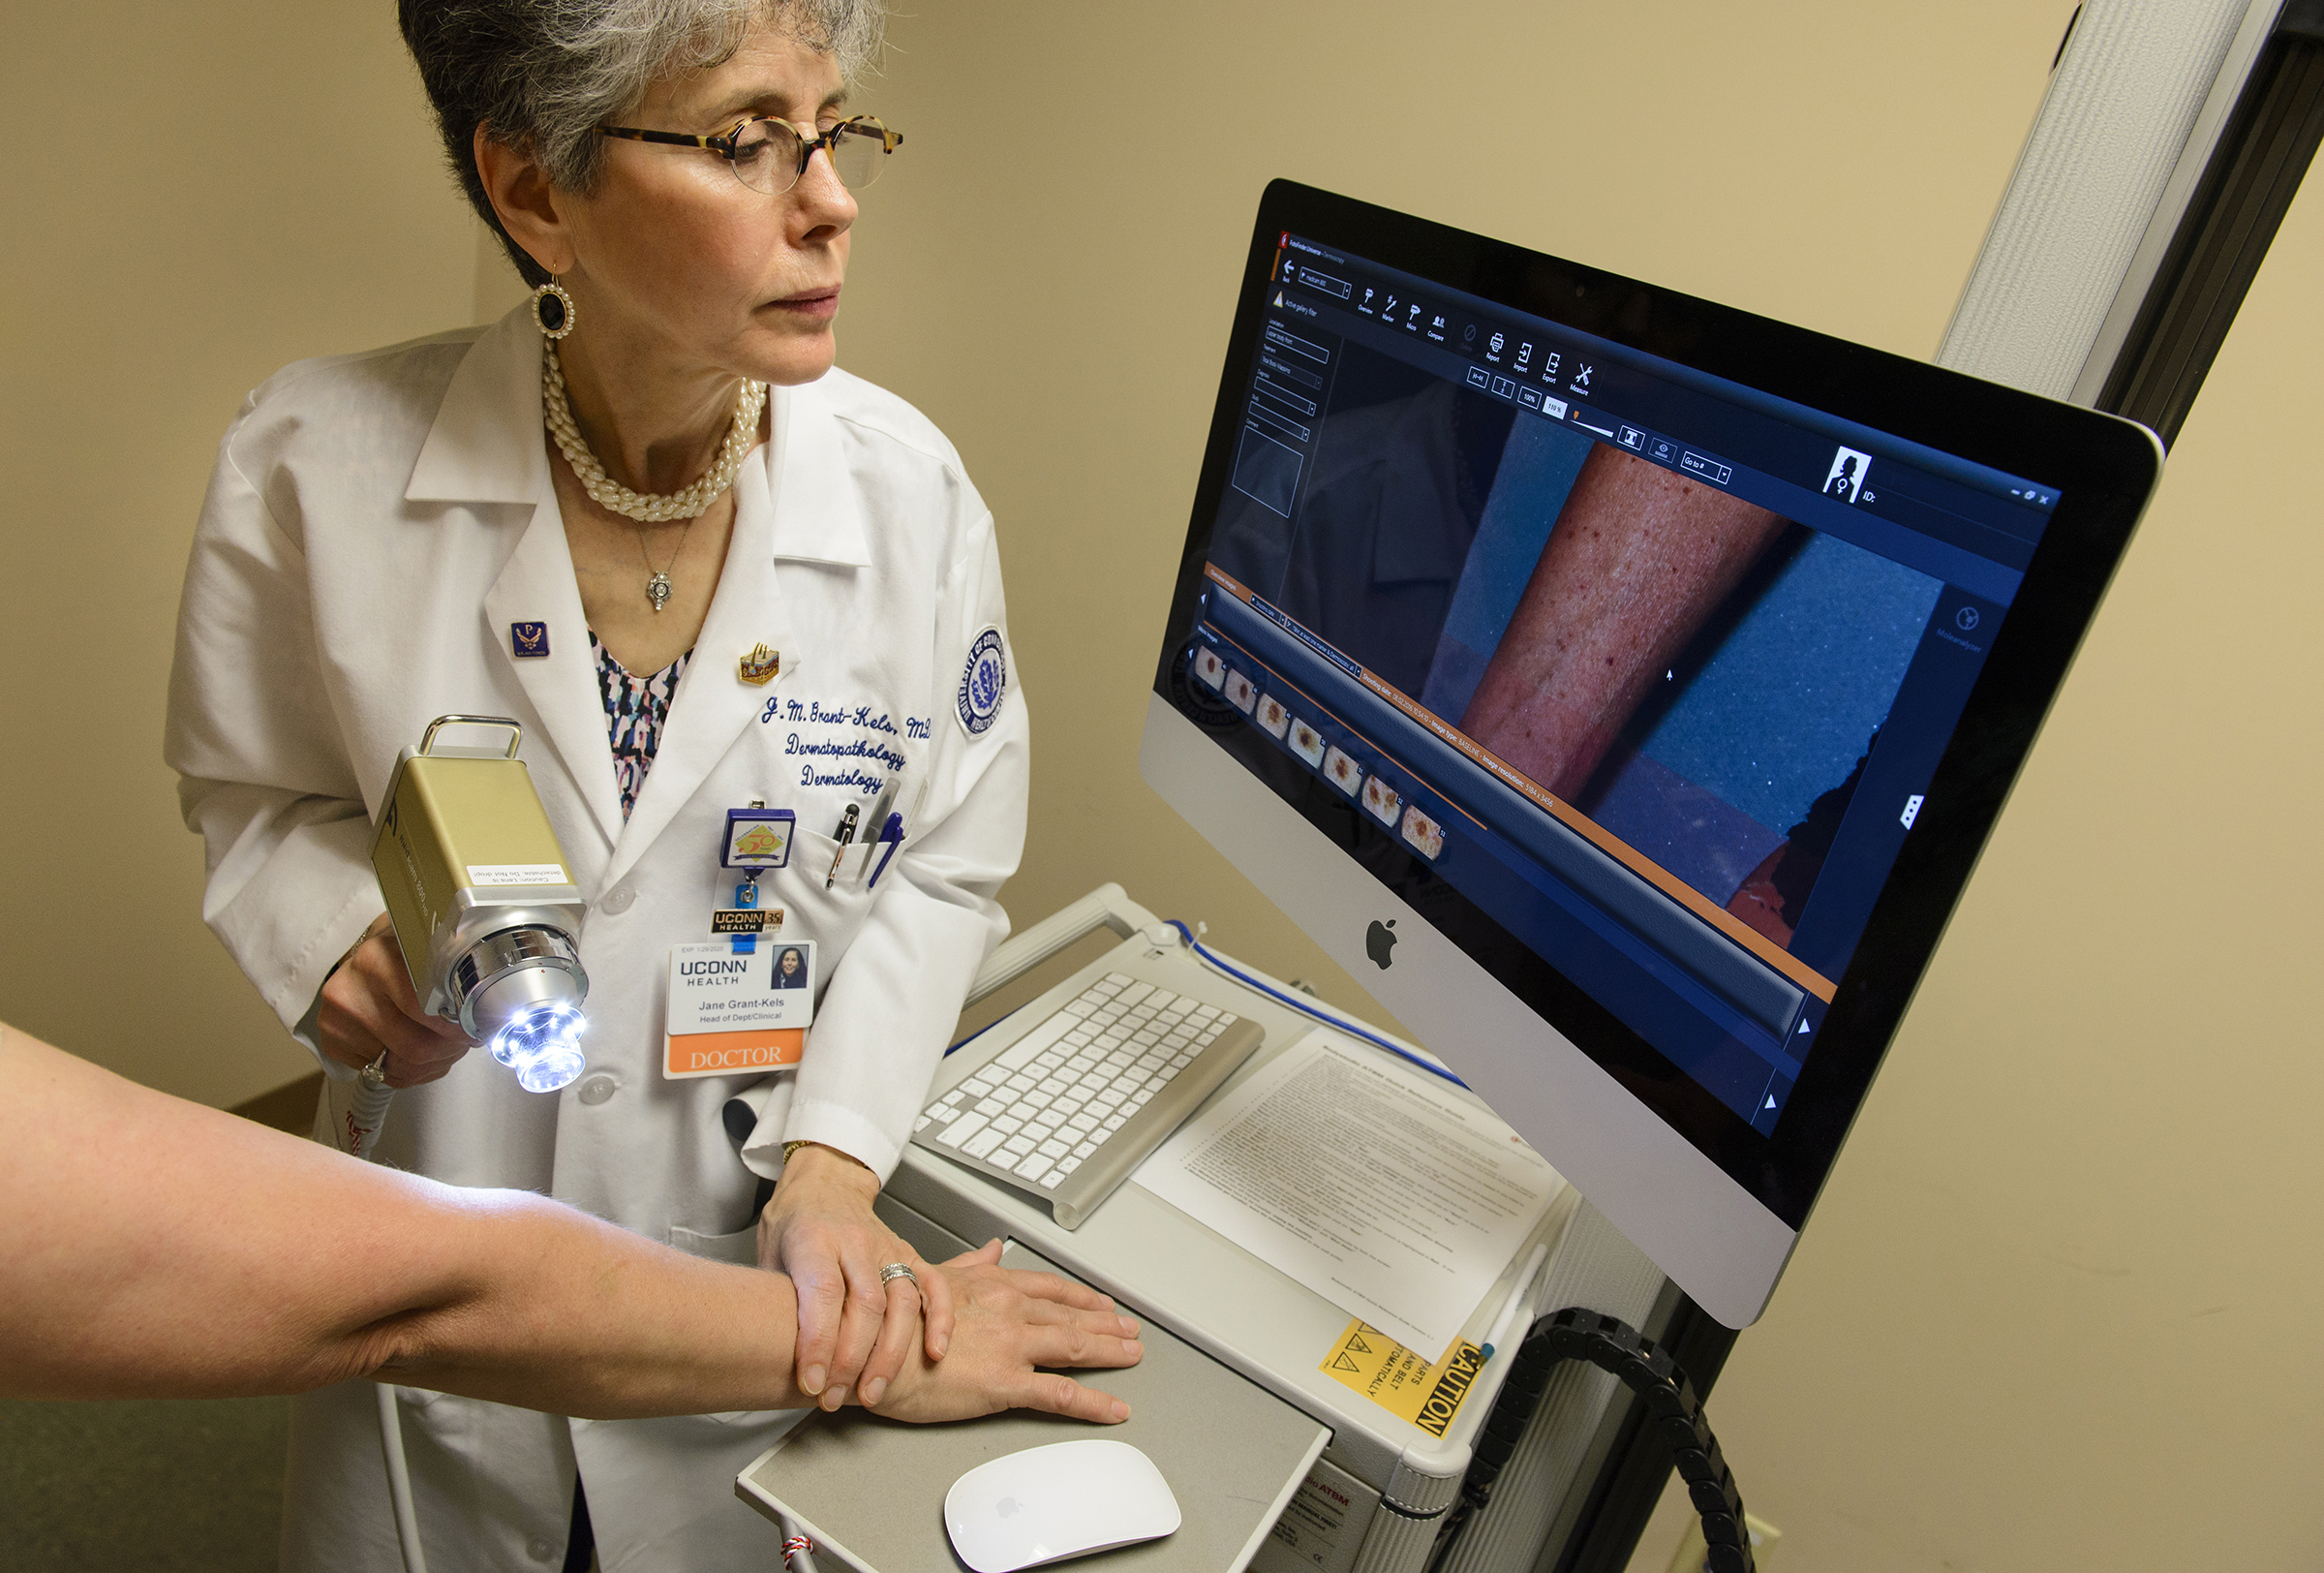 Finding Skin Cancer In A Flash